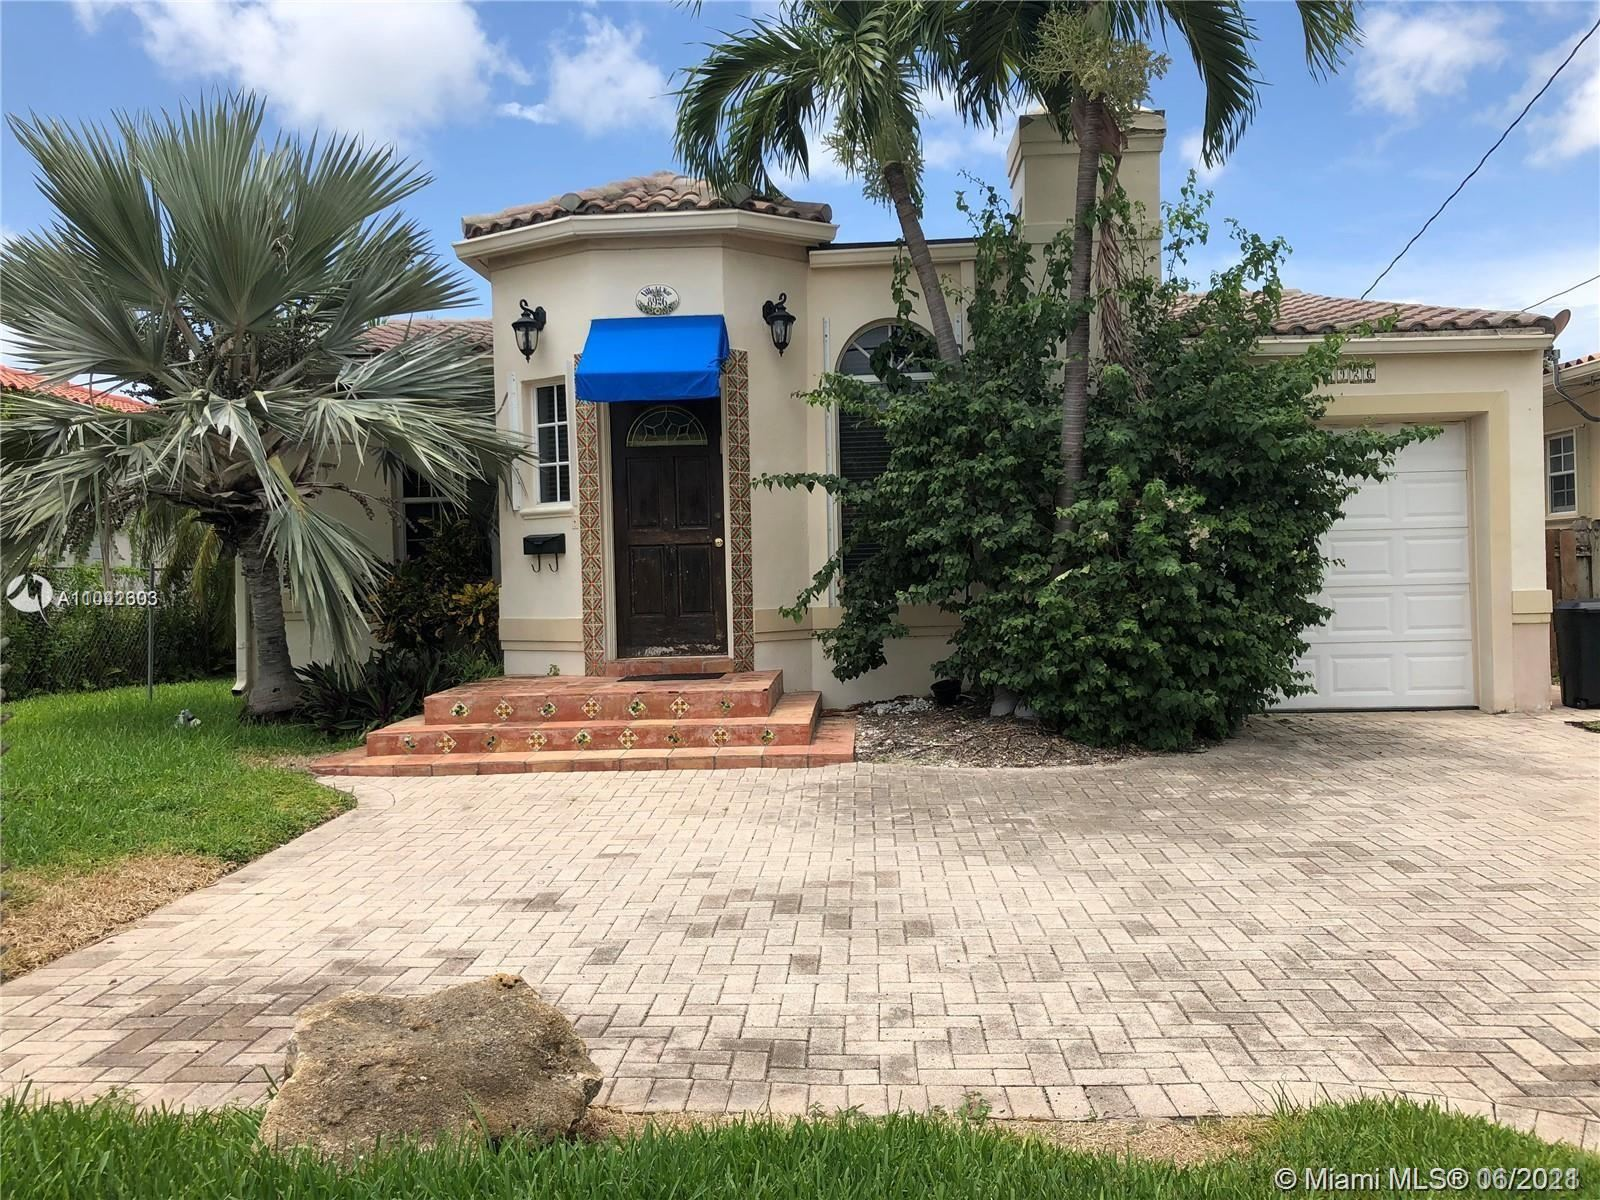 8926 Emerson Ave, Surfside, FL 33154 - #: A11042303